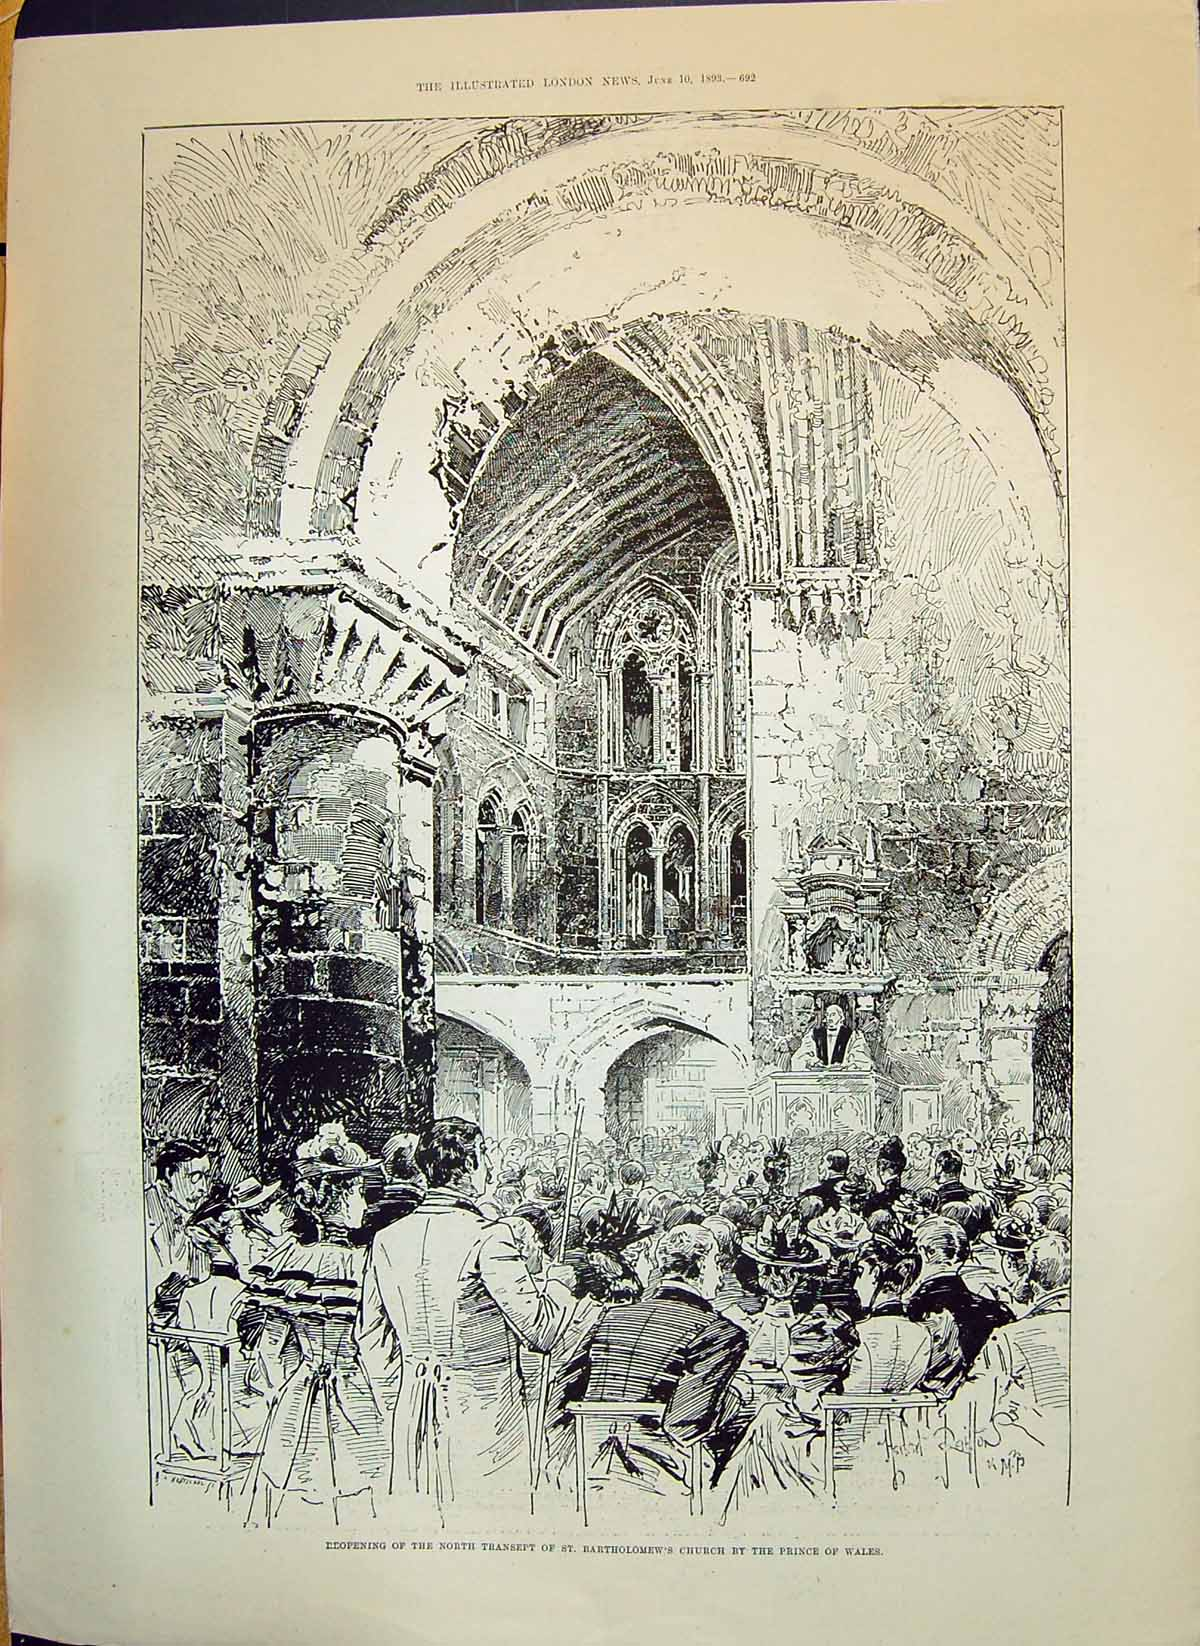 Old-1893-Transept-Bartholomews-Church-Prince-Wales-United-Service-Ins-Victorian